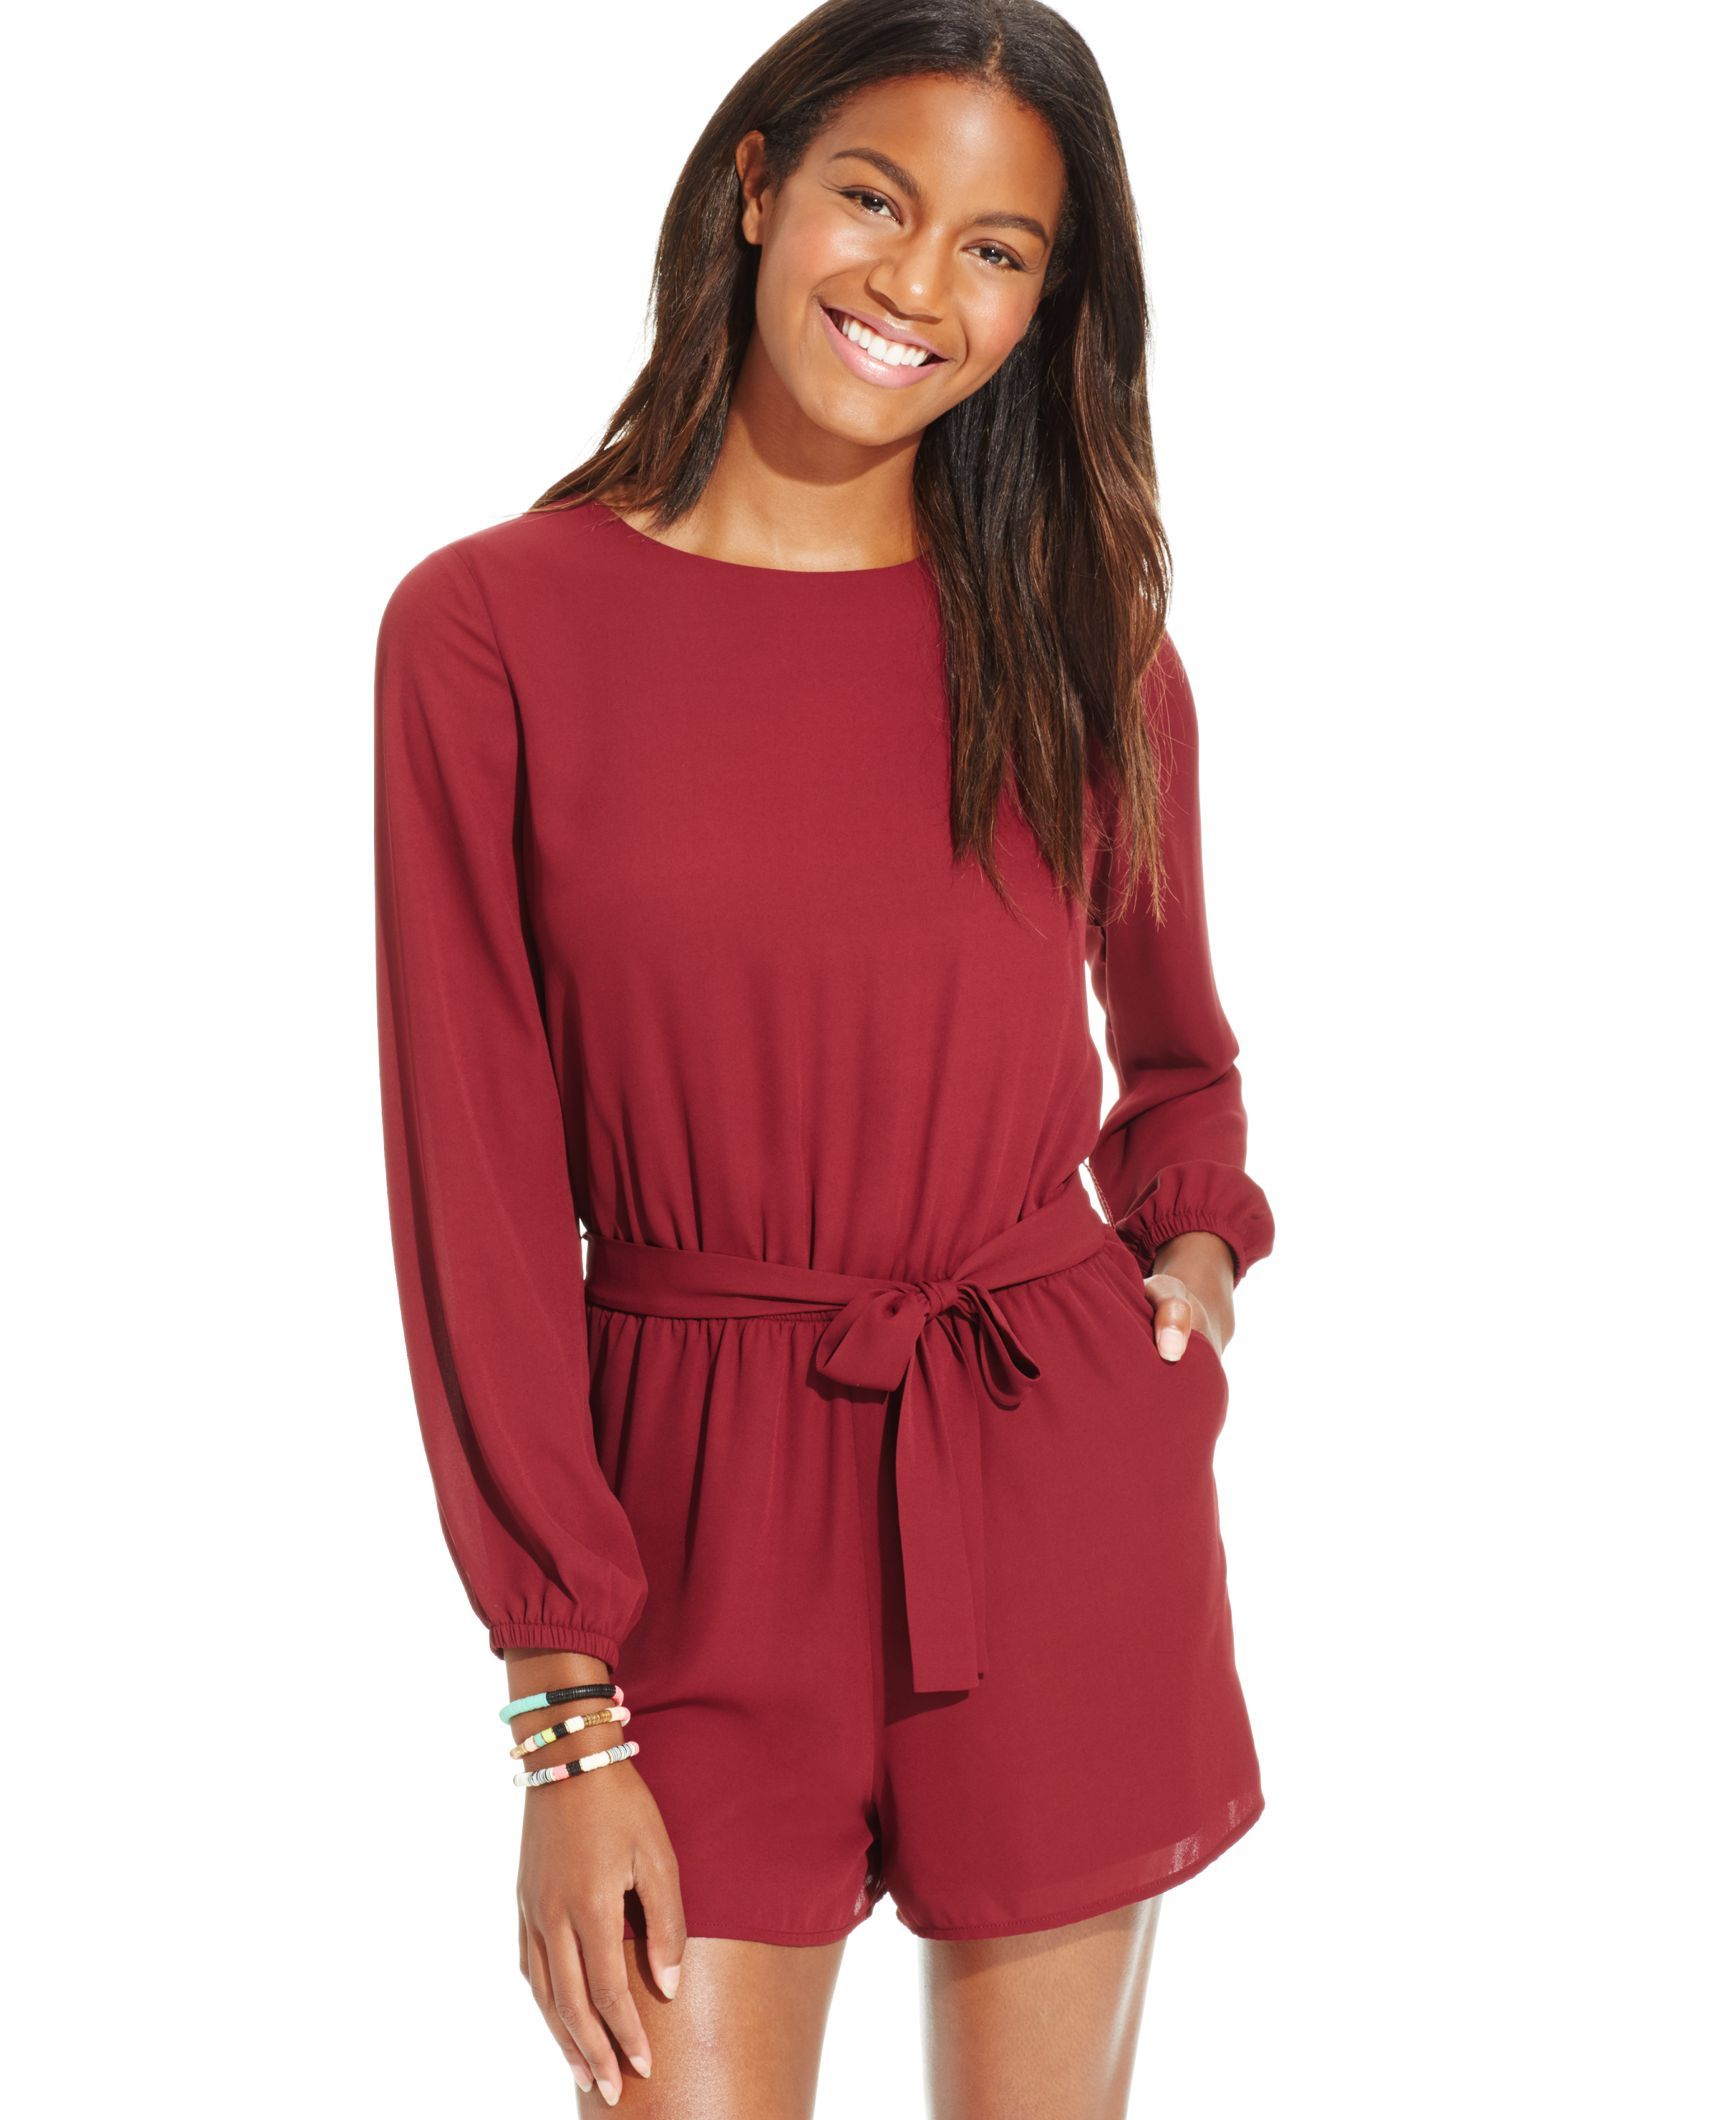 Jumpsuits & Rompers for Juniors. Find an outfit that's both chic and effortless with jumpsuits and rompers for juniors from Belk. Find floral prints just right for a breezy weekend look, and juniors' jumpsuits with ruffled details or lace accents for a festive night out.